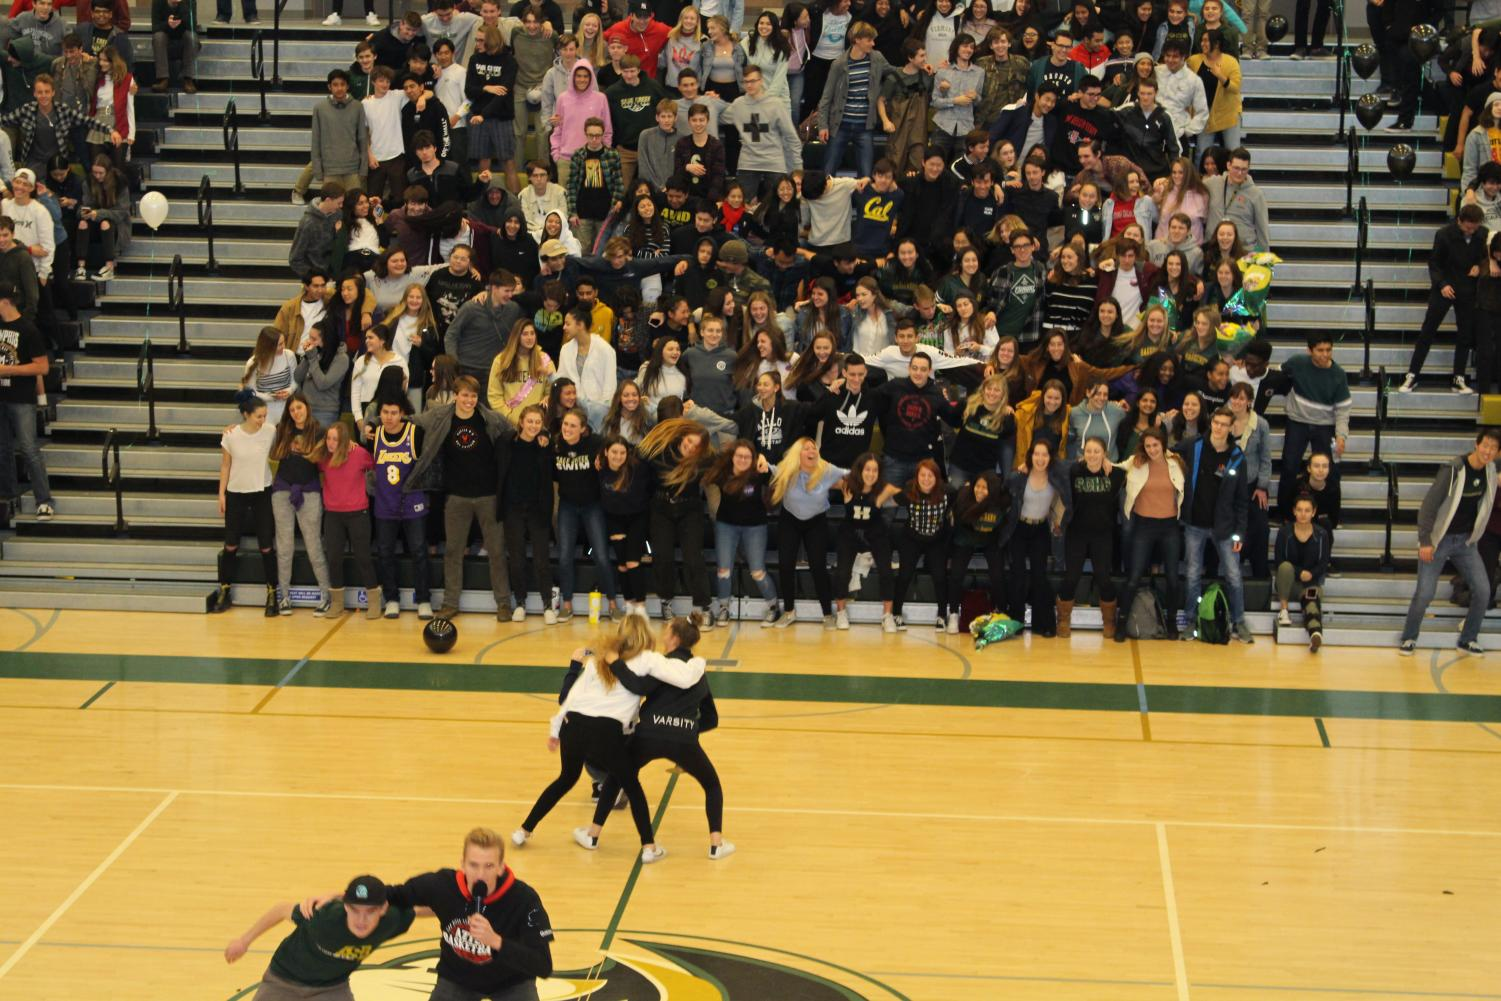 ASB+members+Cierra+Healy+and+Mary+Feldmann+sway+back+and+forth+during+last+weeks+pep+rally%2C+teaching+the+upper+classman+a+new+cheer+to+use+at+spring+sports+games.+Last+friday%2C+the+recognition+rally+recognized+students+and+faculty+for+various+departments+and+around+campus.